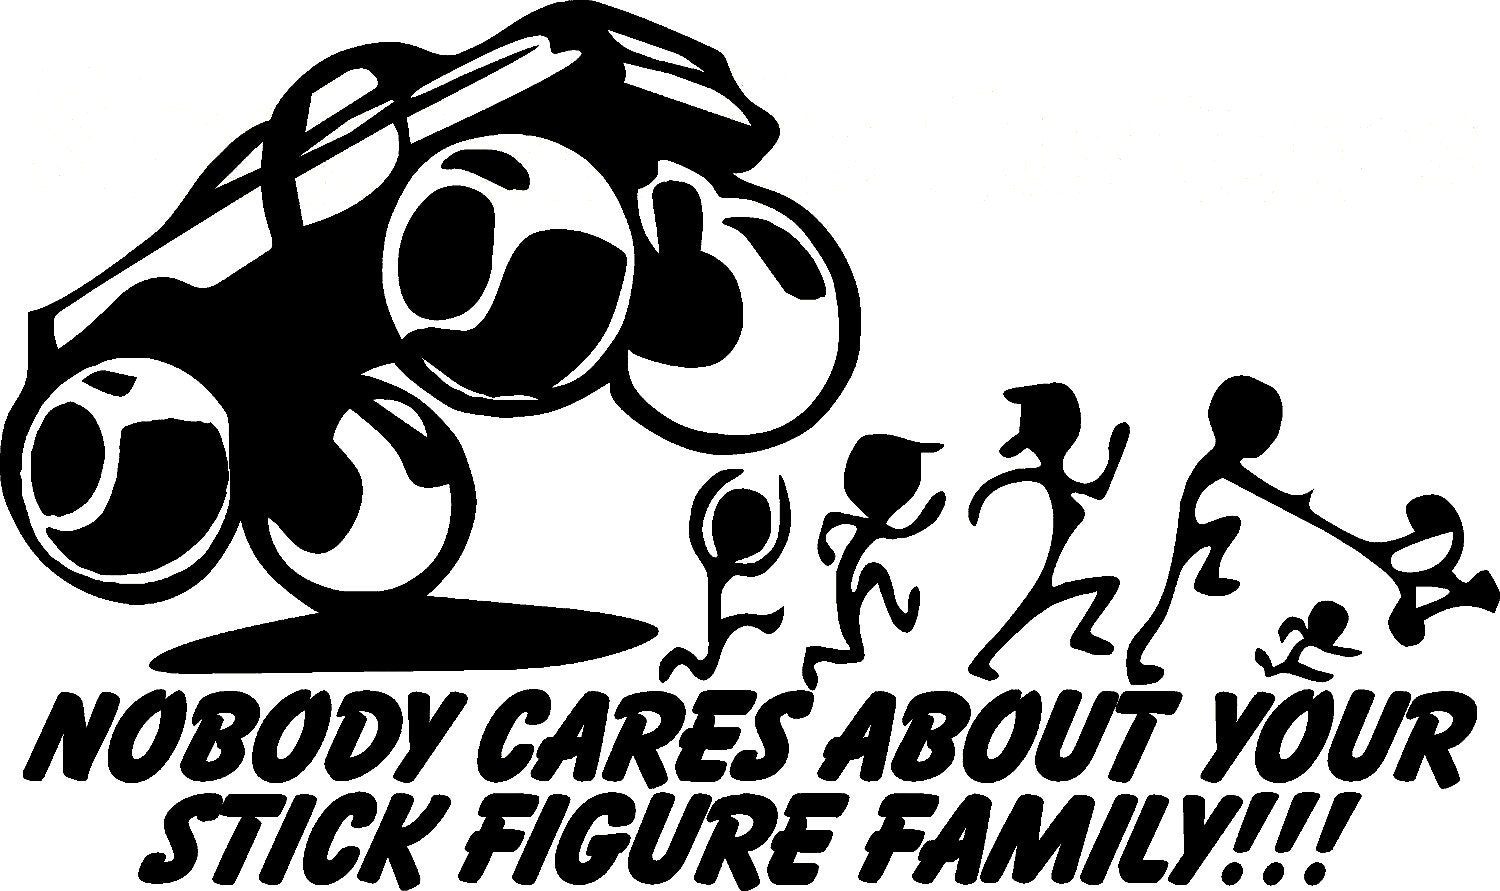 Funny Nobody Cares About Your Stick Figure Family Car Window